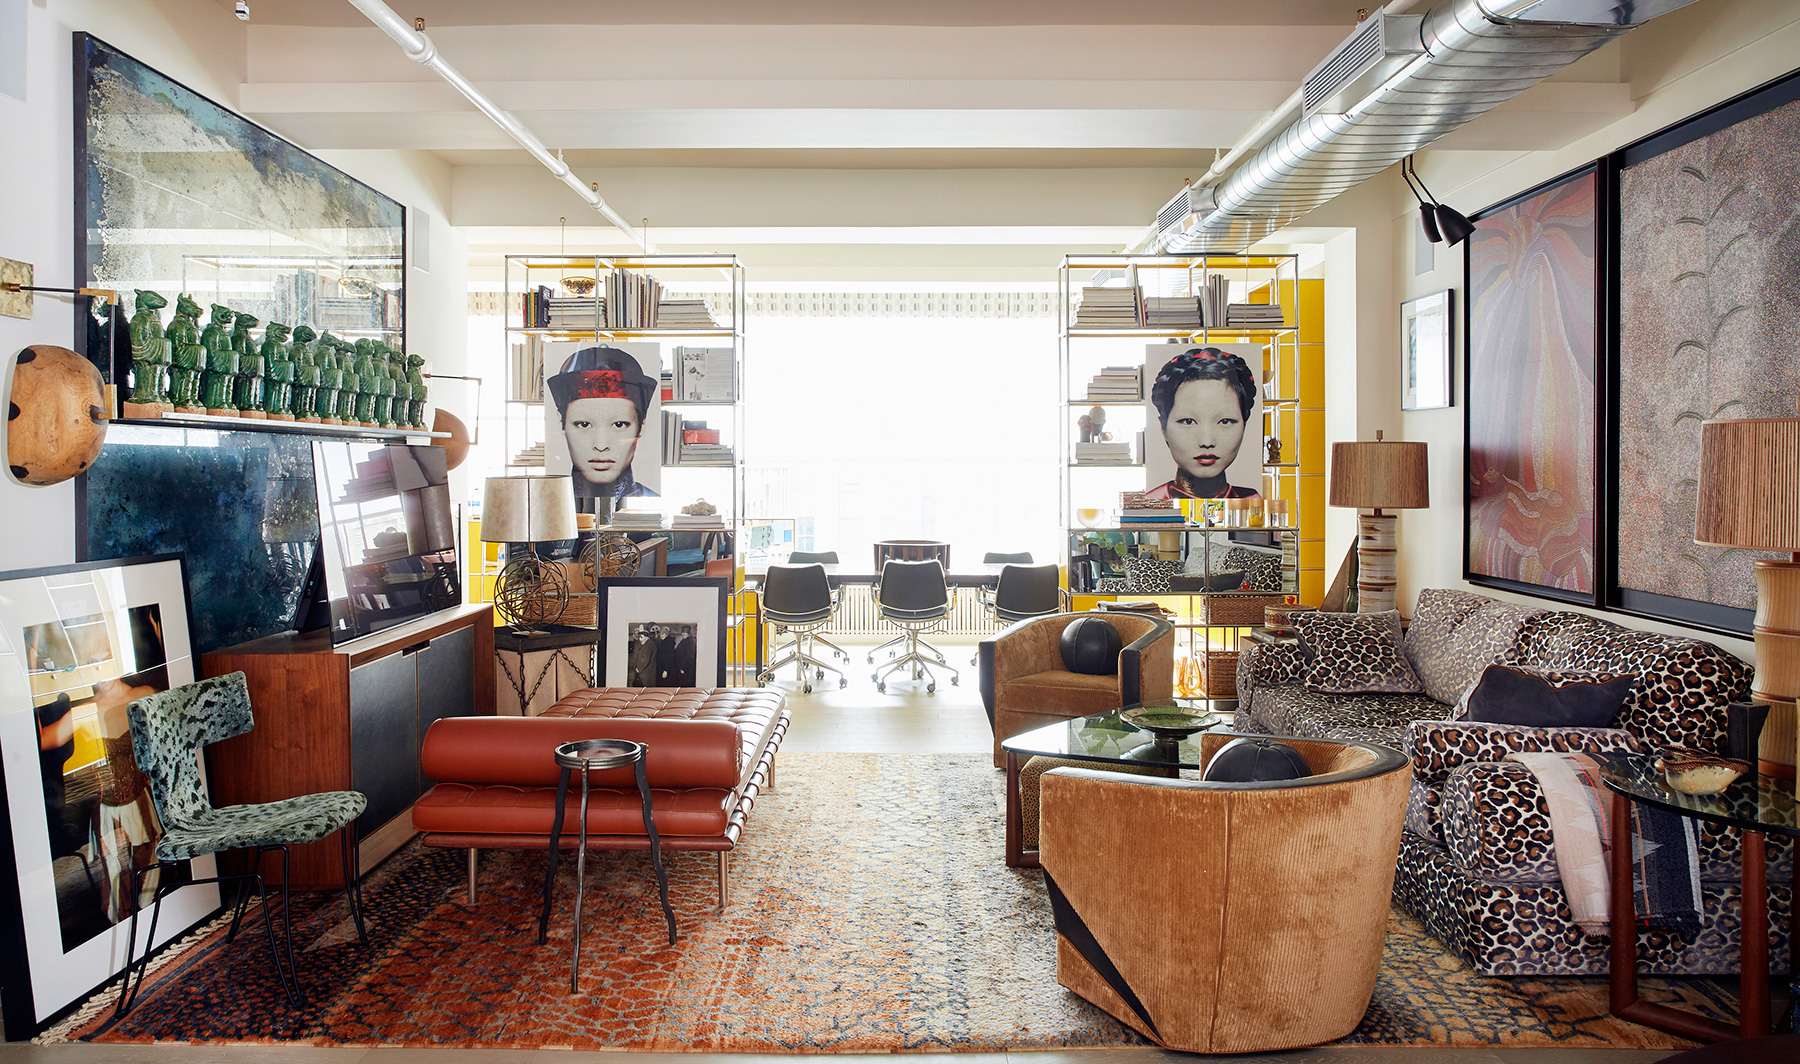 Interior designer Drew McGukin New York loft living room